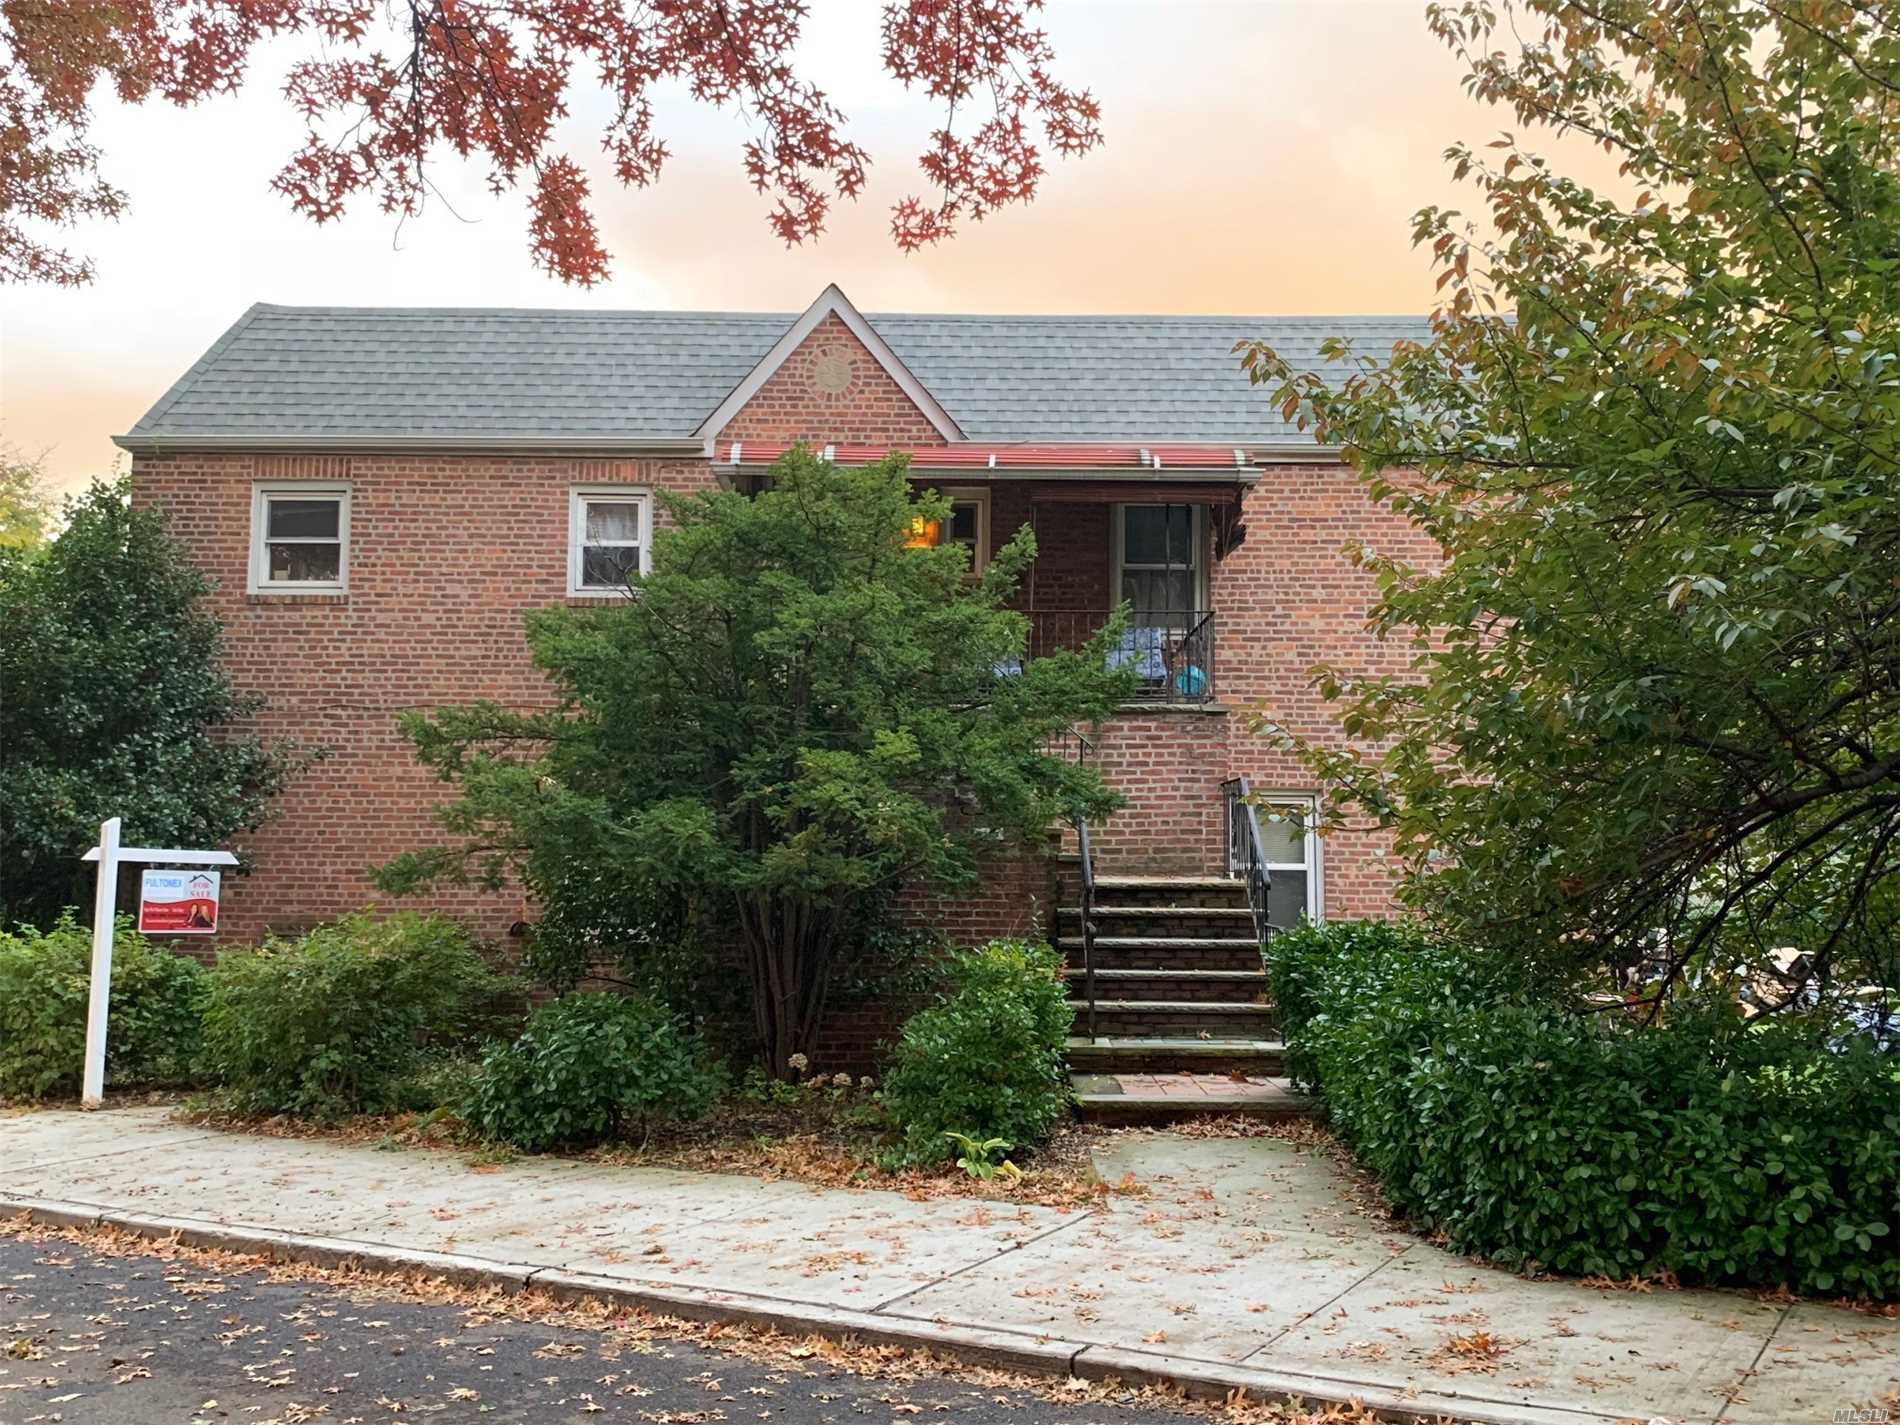 This Legal 2 Family Is Situated On A Corner Lot,  Two Bedroom Over Two Bedroom, Building Size 22X46 Walking Distance To Schools, Worship Centers, Close To E, R Train And Lirr Easy Access To Major Highways. Must See!